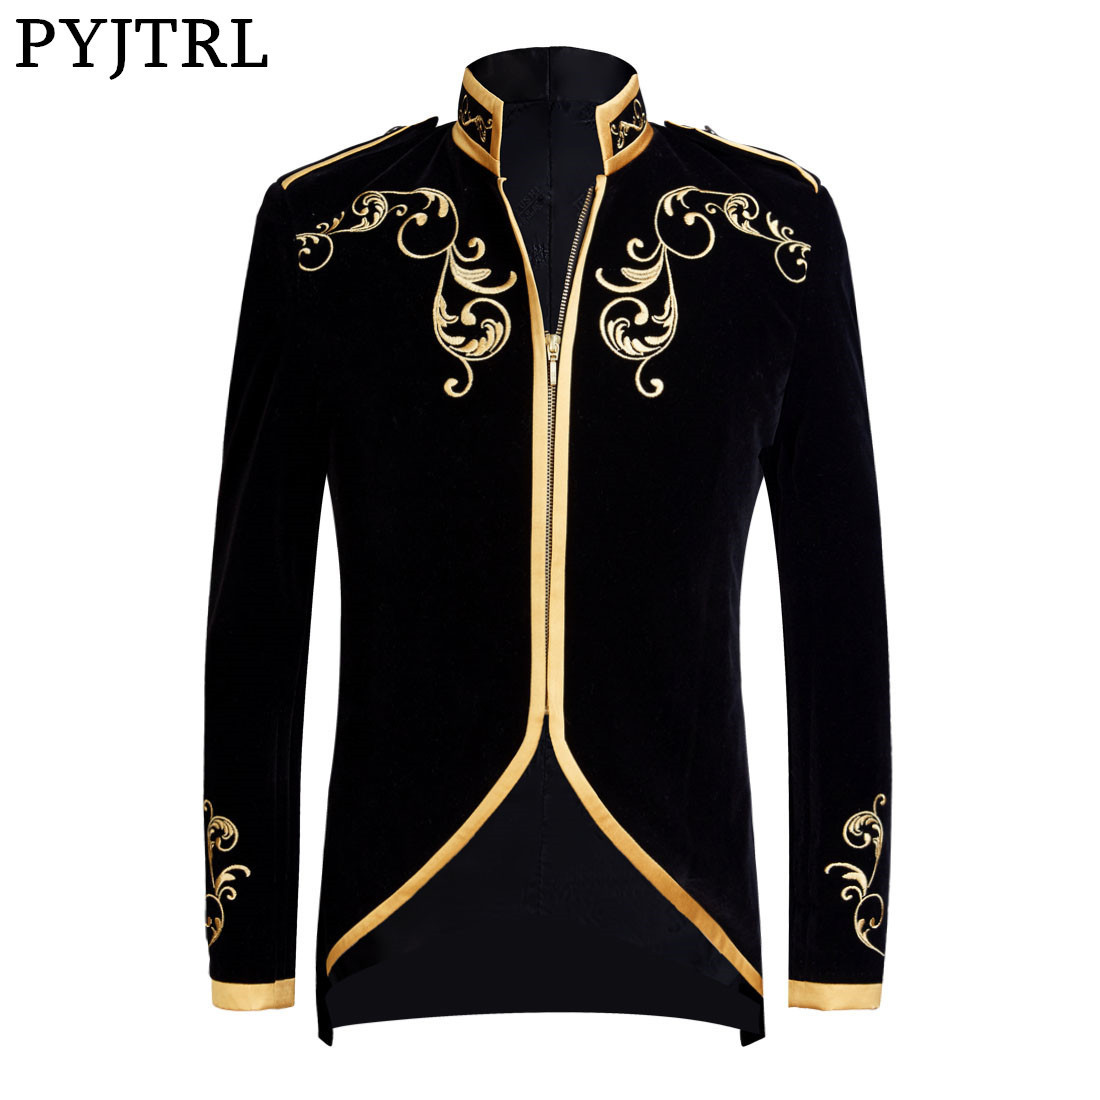 PYJTRL British Style Palace Prince Black Velvet Gold Embroidery Blazer Wedding Groom